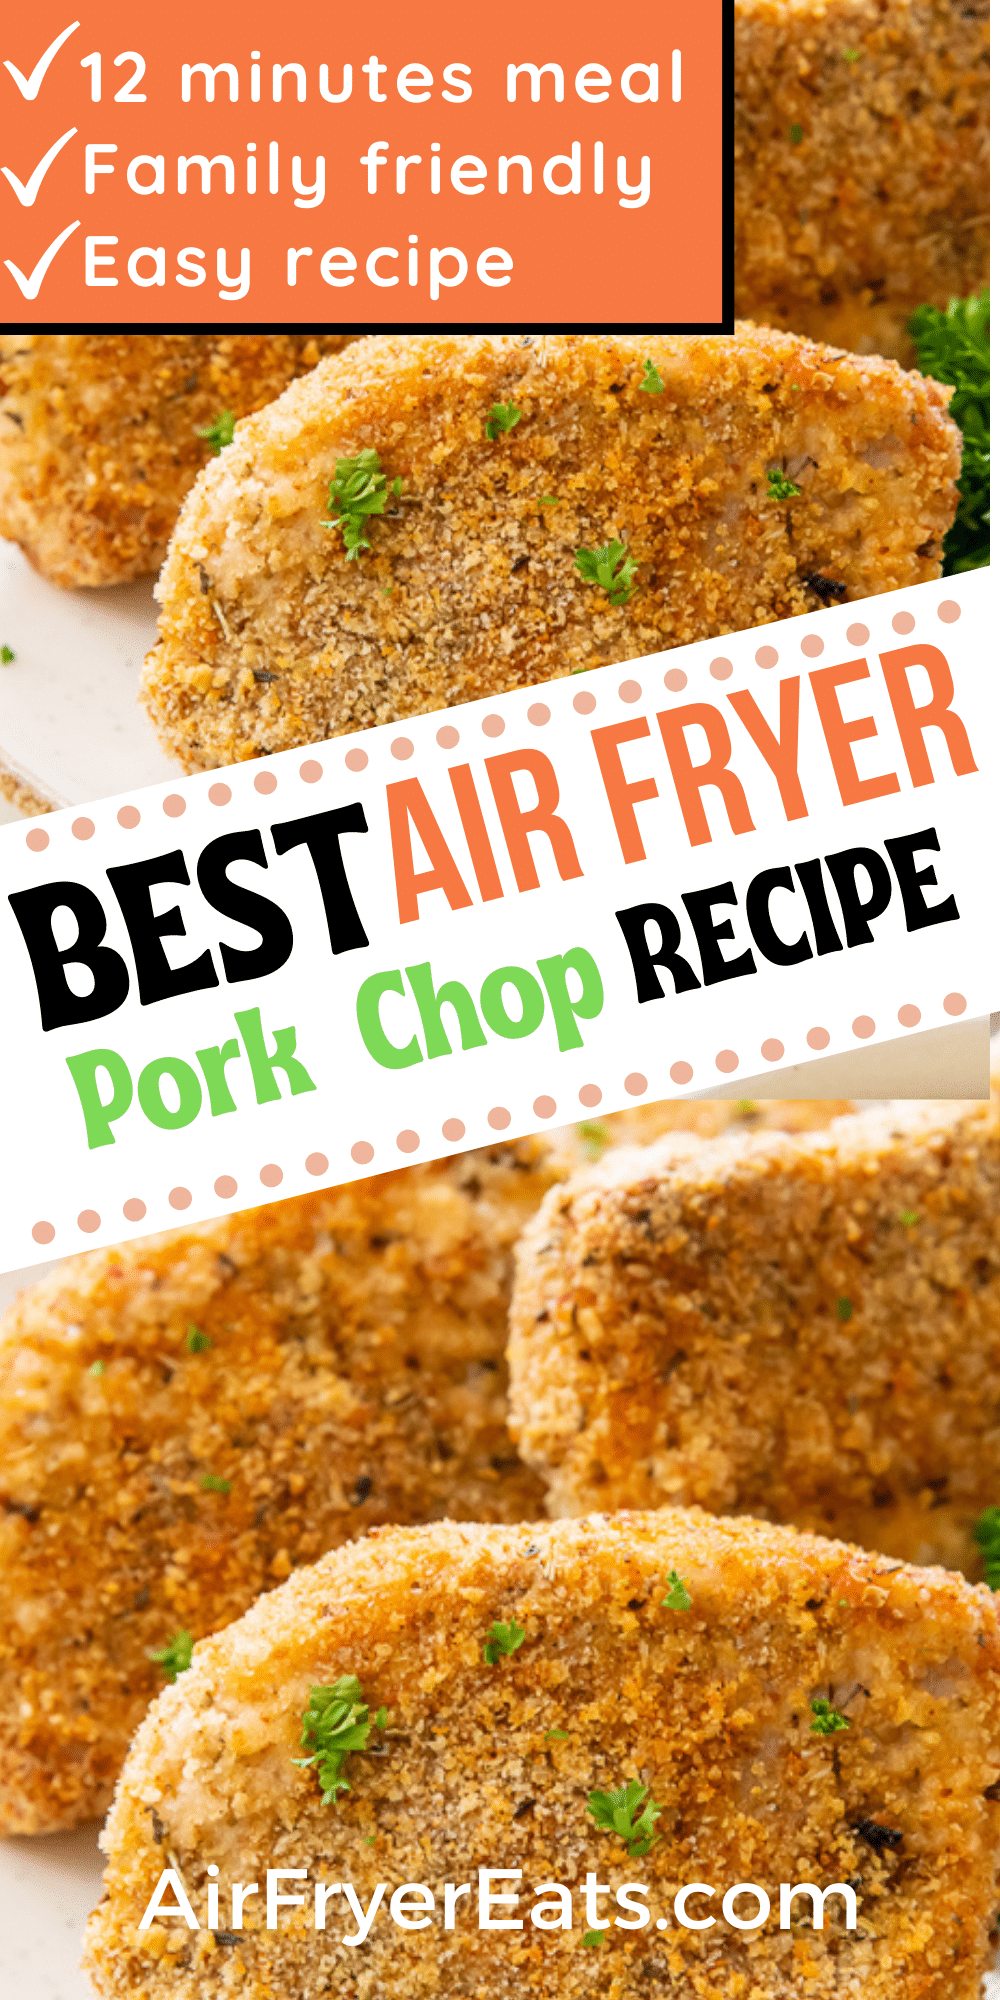 Make the perfect Air Fryer Breaded Pork Chops for dinner! These Air Fryer Pork Chops are perfectly seasoned, lightly breaded, and come out crispy and delicious in under 15 minutes. #airfryerporkchops via @vegetarianmamma